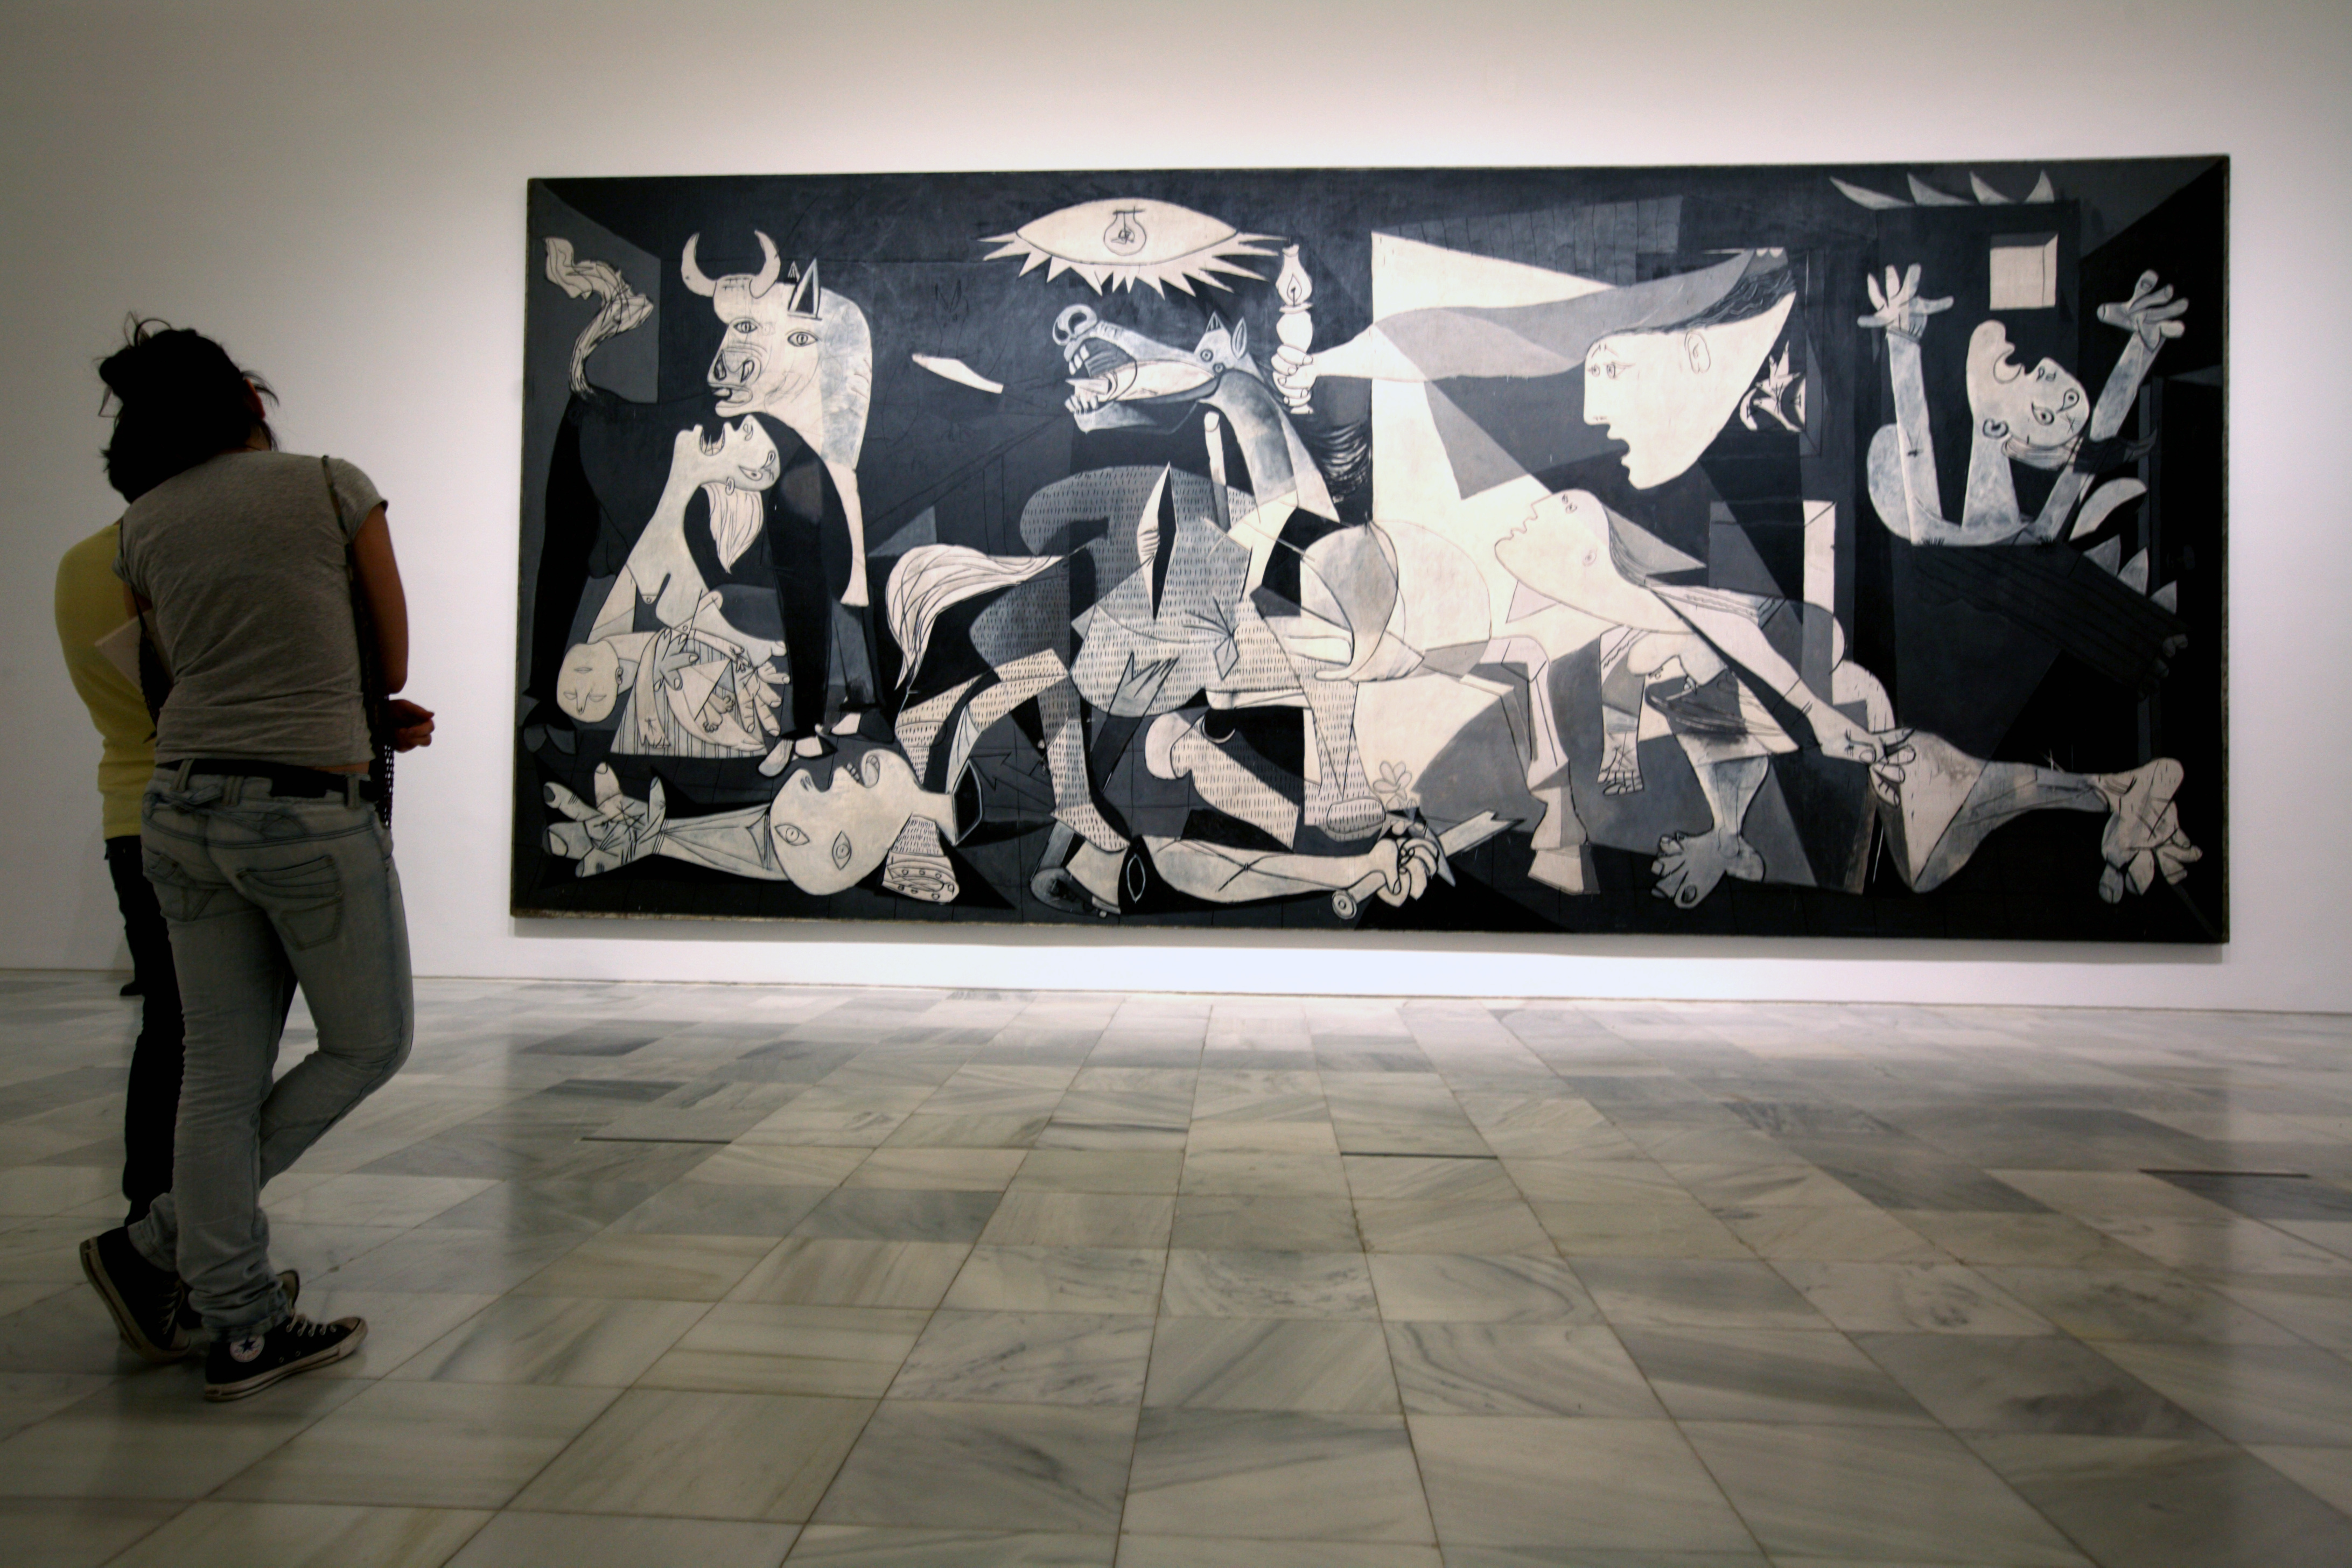 Visitors looking at Pablo Picasso's Guernica in Reina Sofia National Art Museum (Museo Nacional de Arte Reina Sofia).